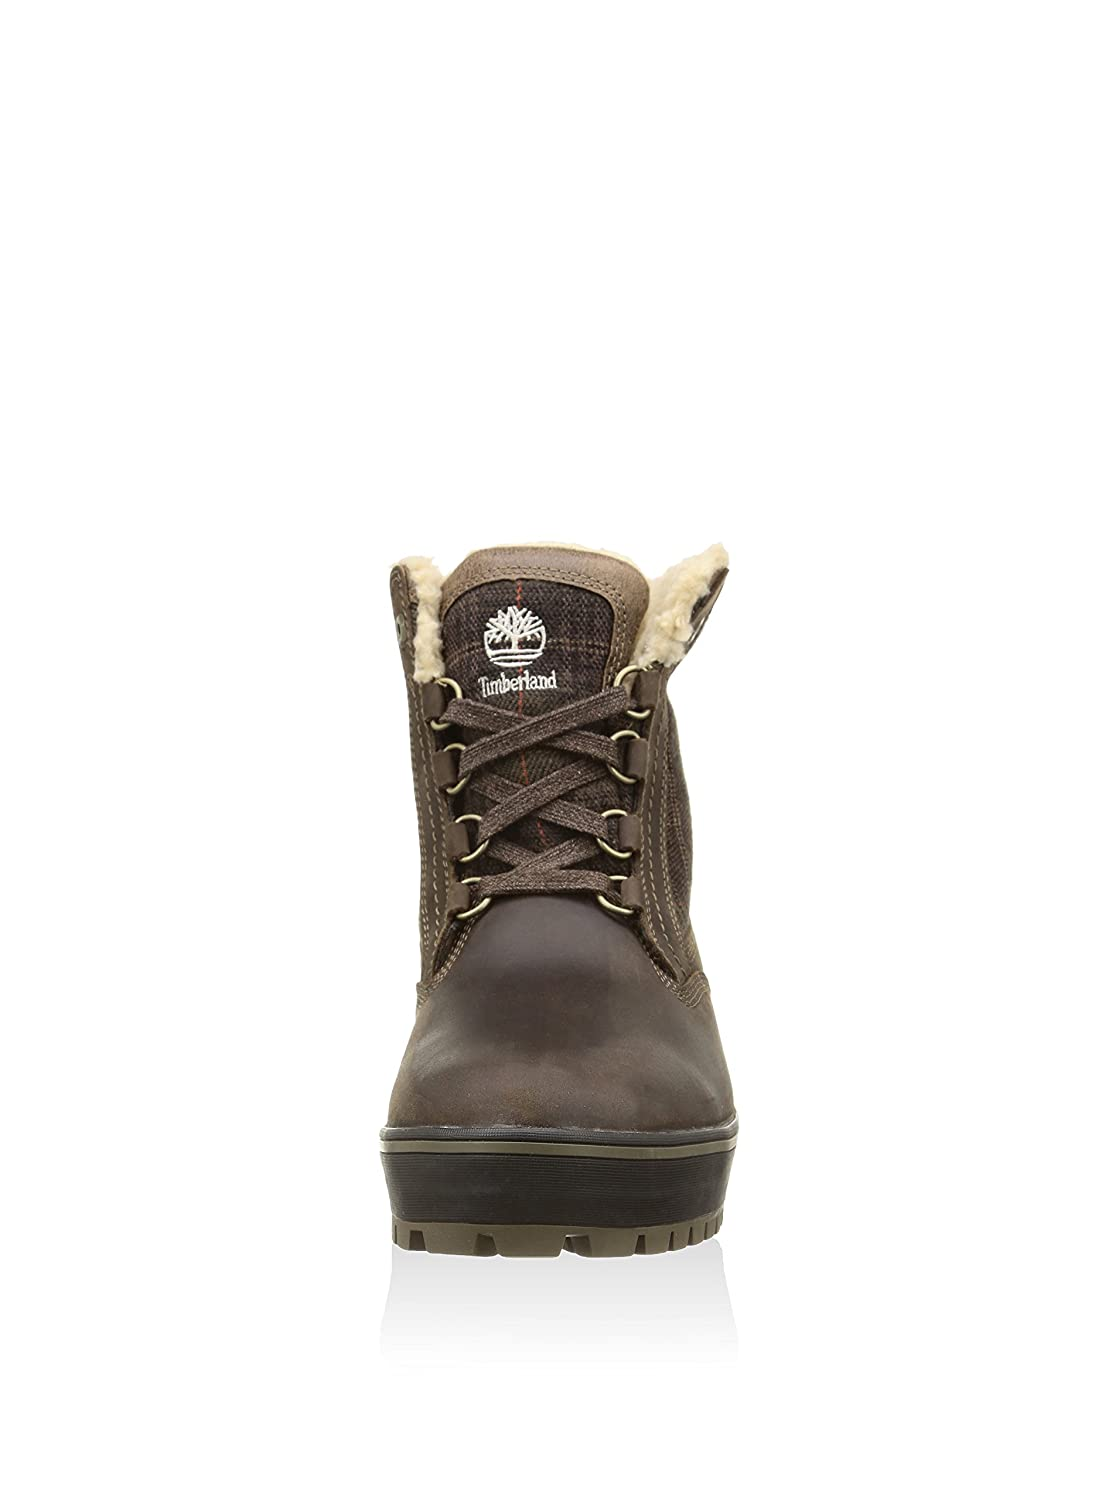 d7c5993faf9 Timberland Mens Spruce Mountain Waterproof Boot, Mulch FG with Plaid ...